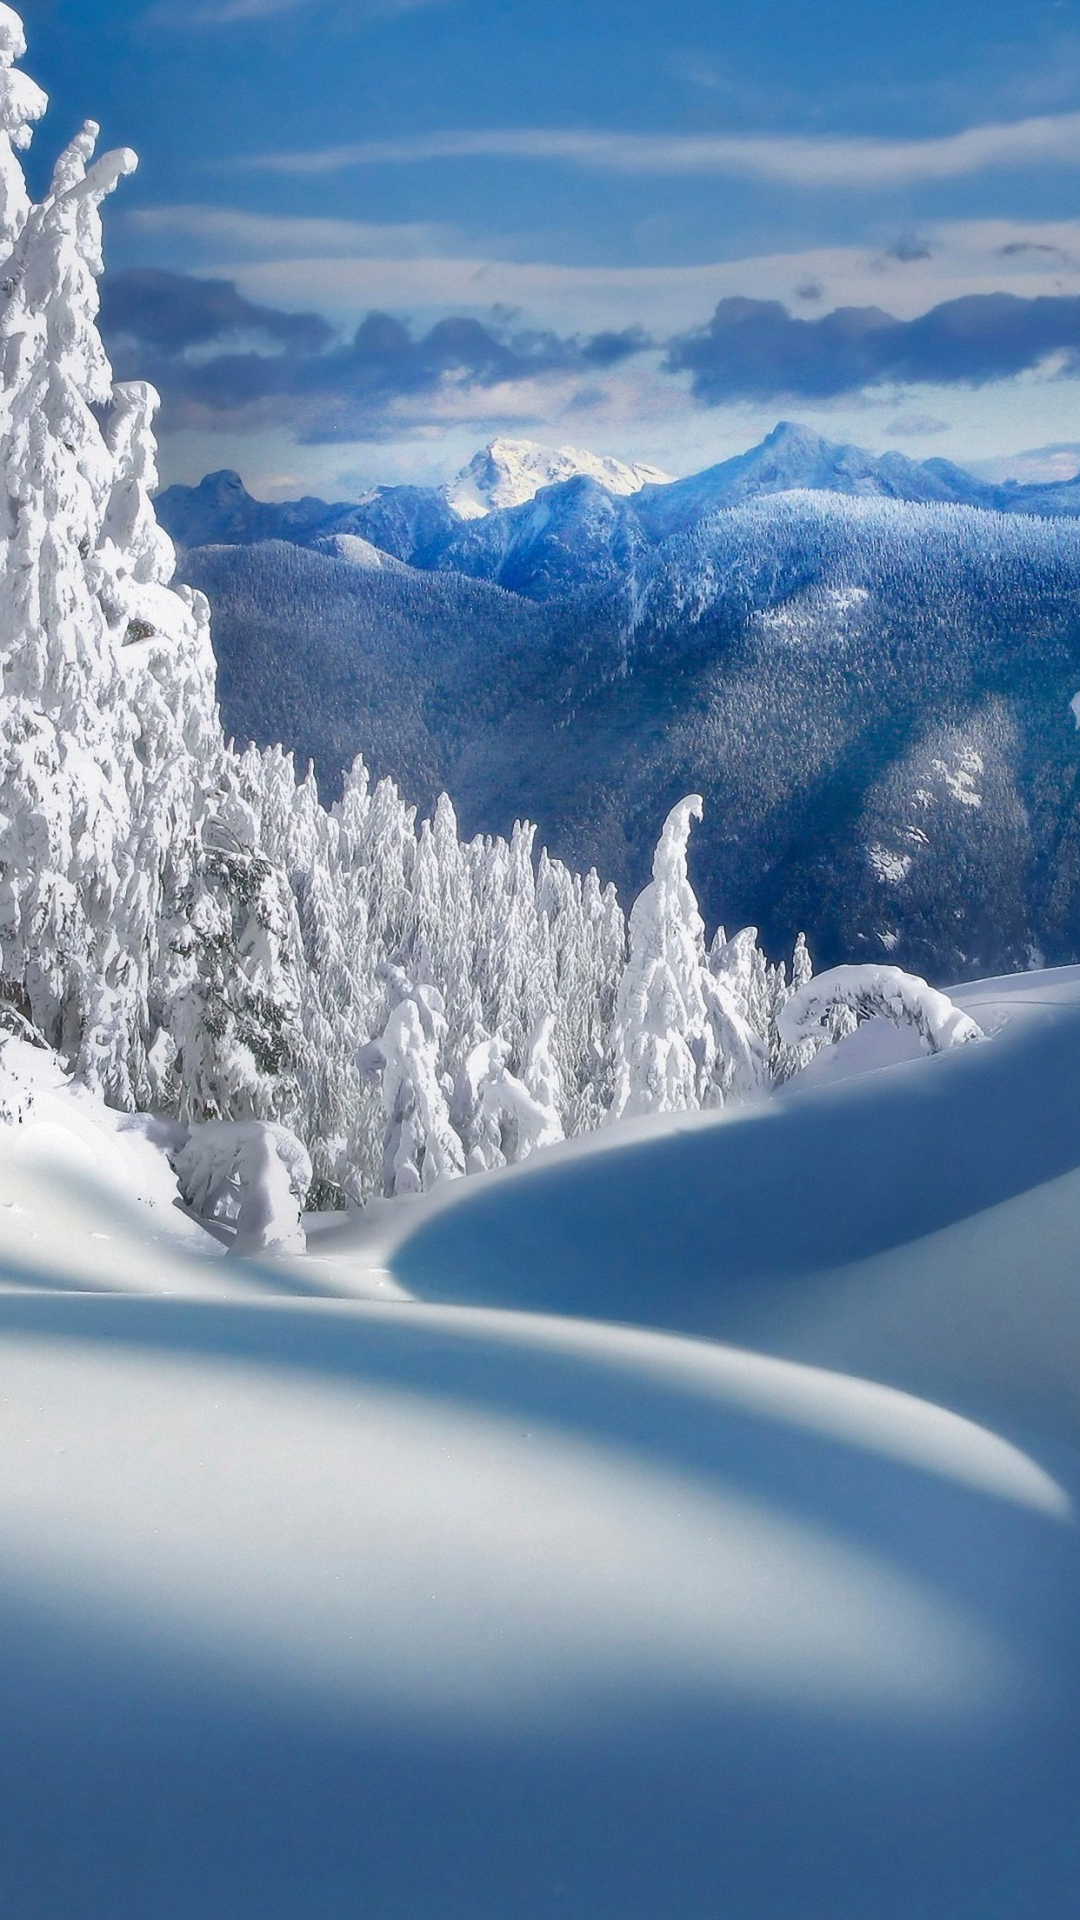 Free Download Winter Wallpapers for Iphone   HD Wallpapers ...  Free Download W...